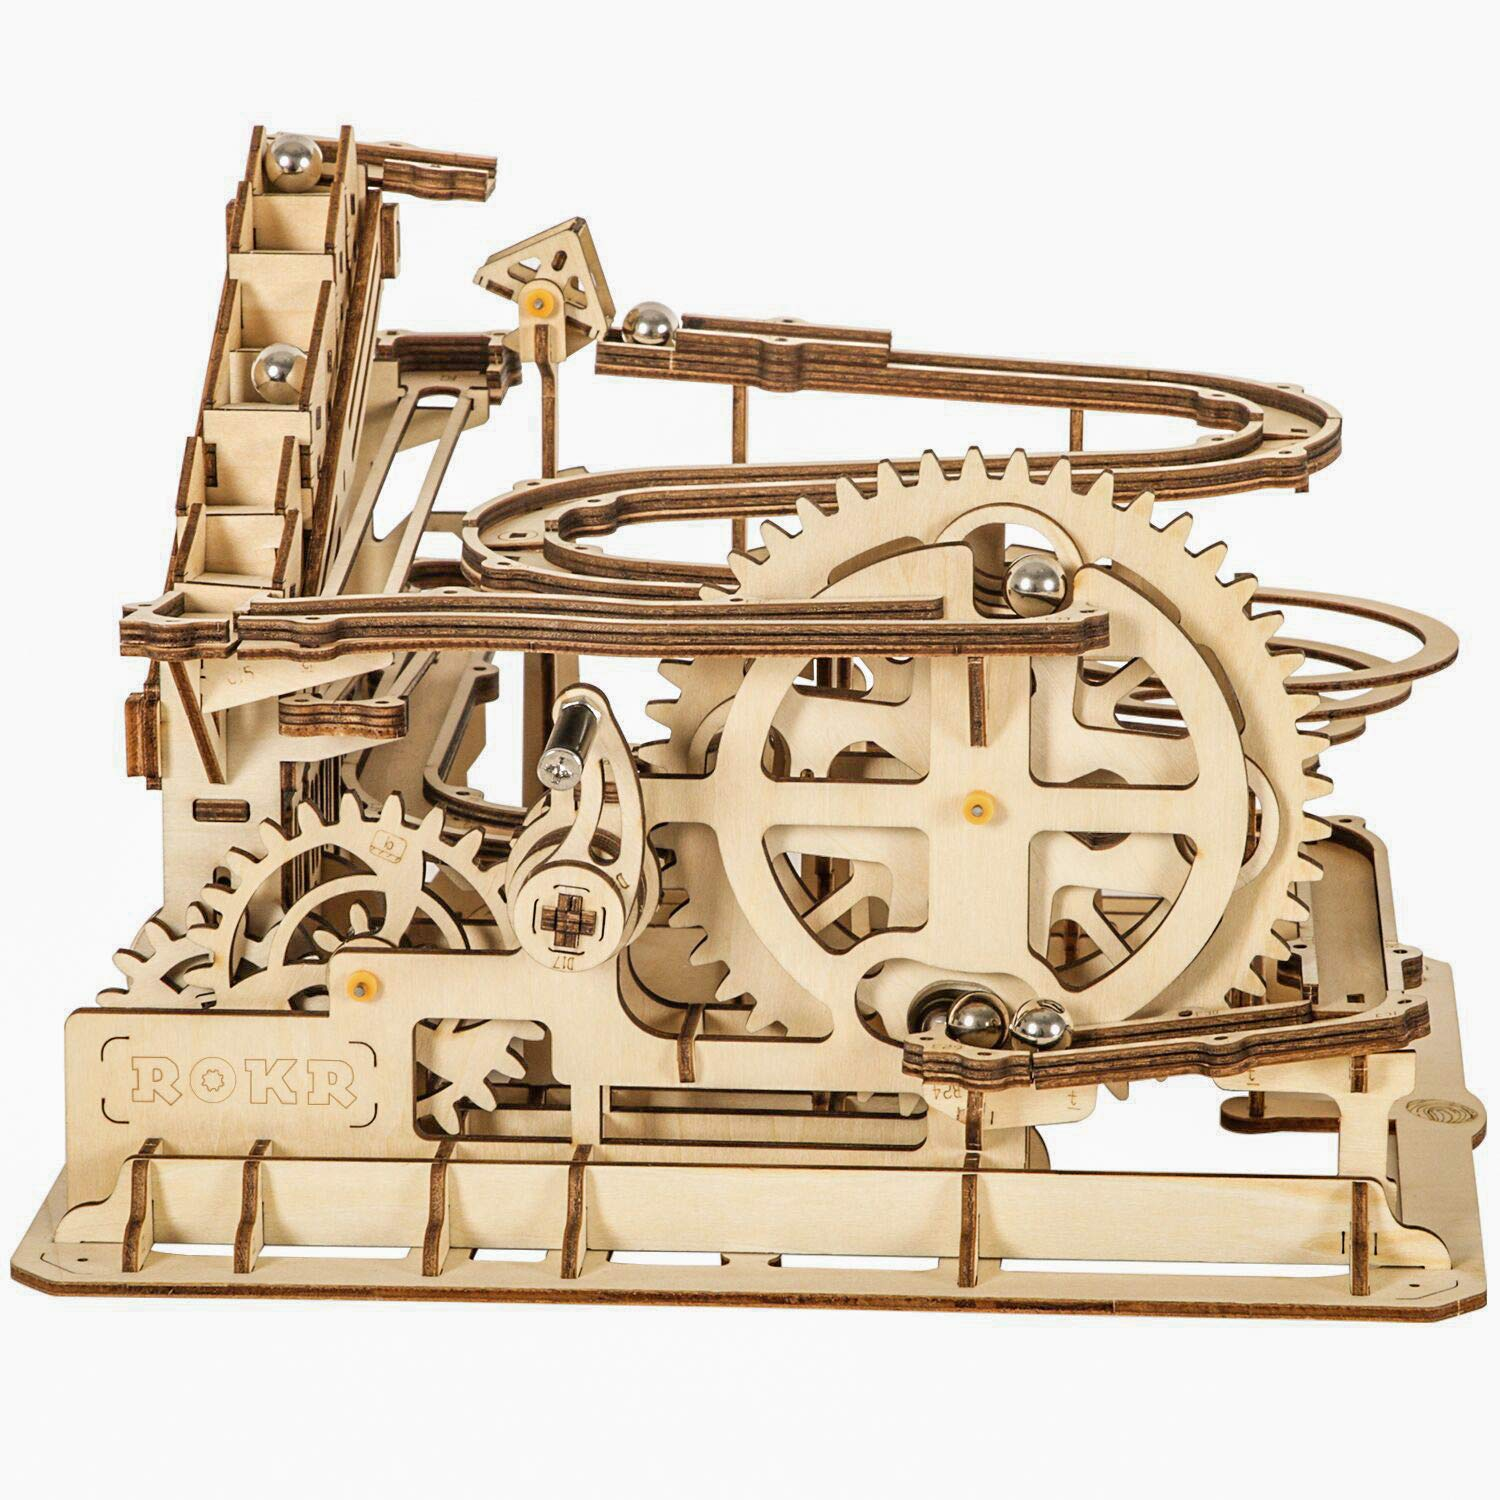 ROKR Marble Run Wooden Model Kits 3D Puzzle Mechanical Puzzles for Teens and Adults(Waterwheel Coaster) by ROKR